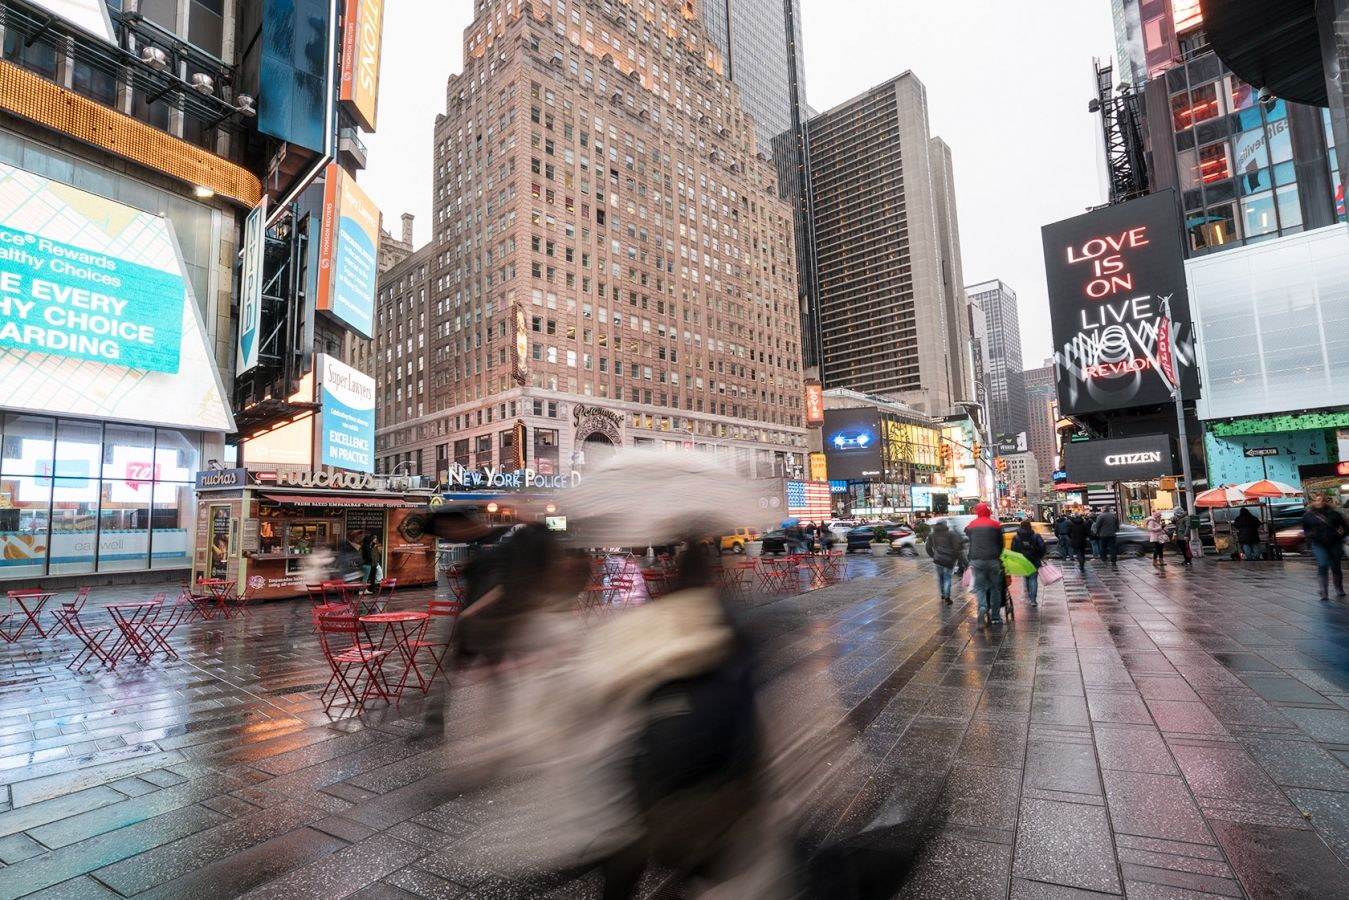 Times Square, photographed using a Sony a7RII with Sony/Zeiss 16-35/4 on a Gitzo Traveler Tripod at ¼ sec, f/11, ISO 100